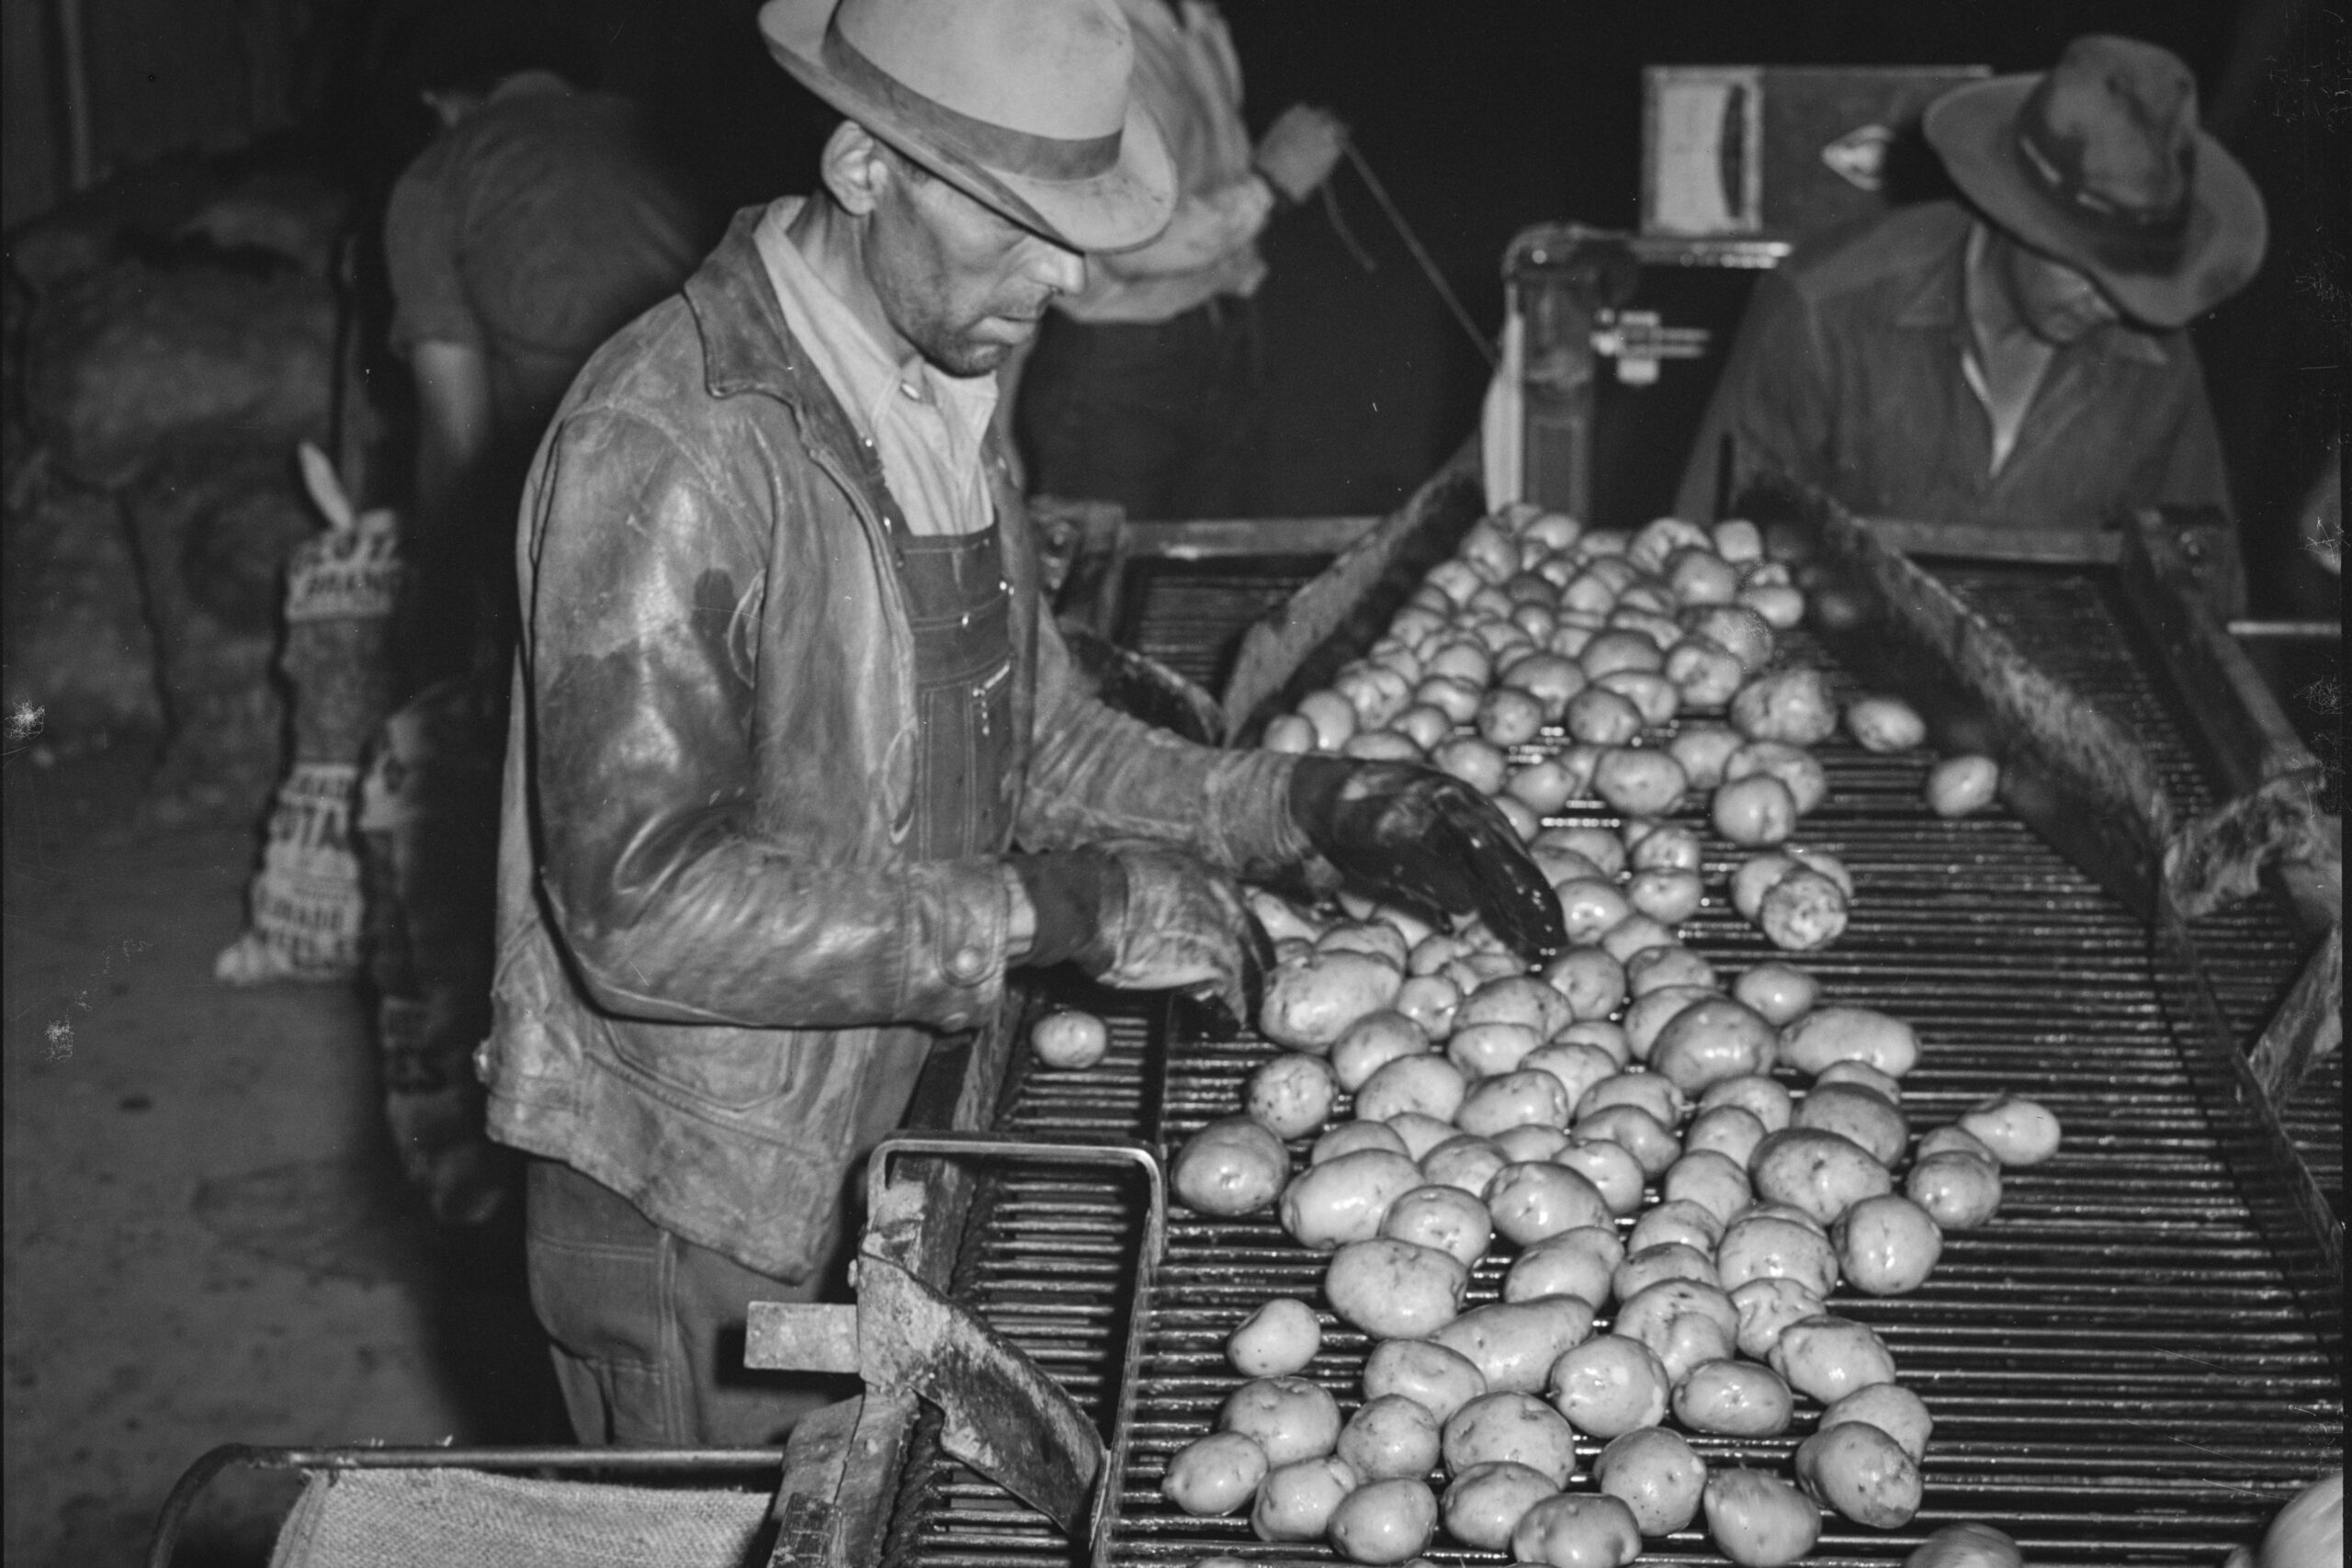 A worker inspects washed potatoes in Monte Vista, Colo., October 1939.